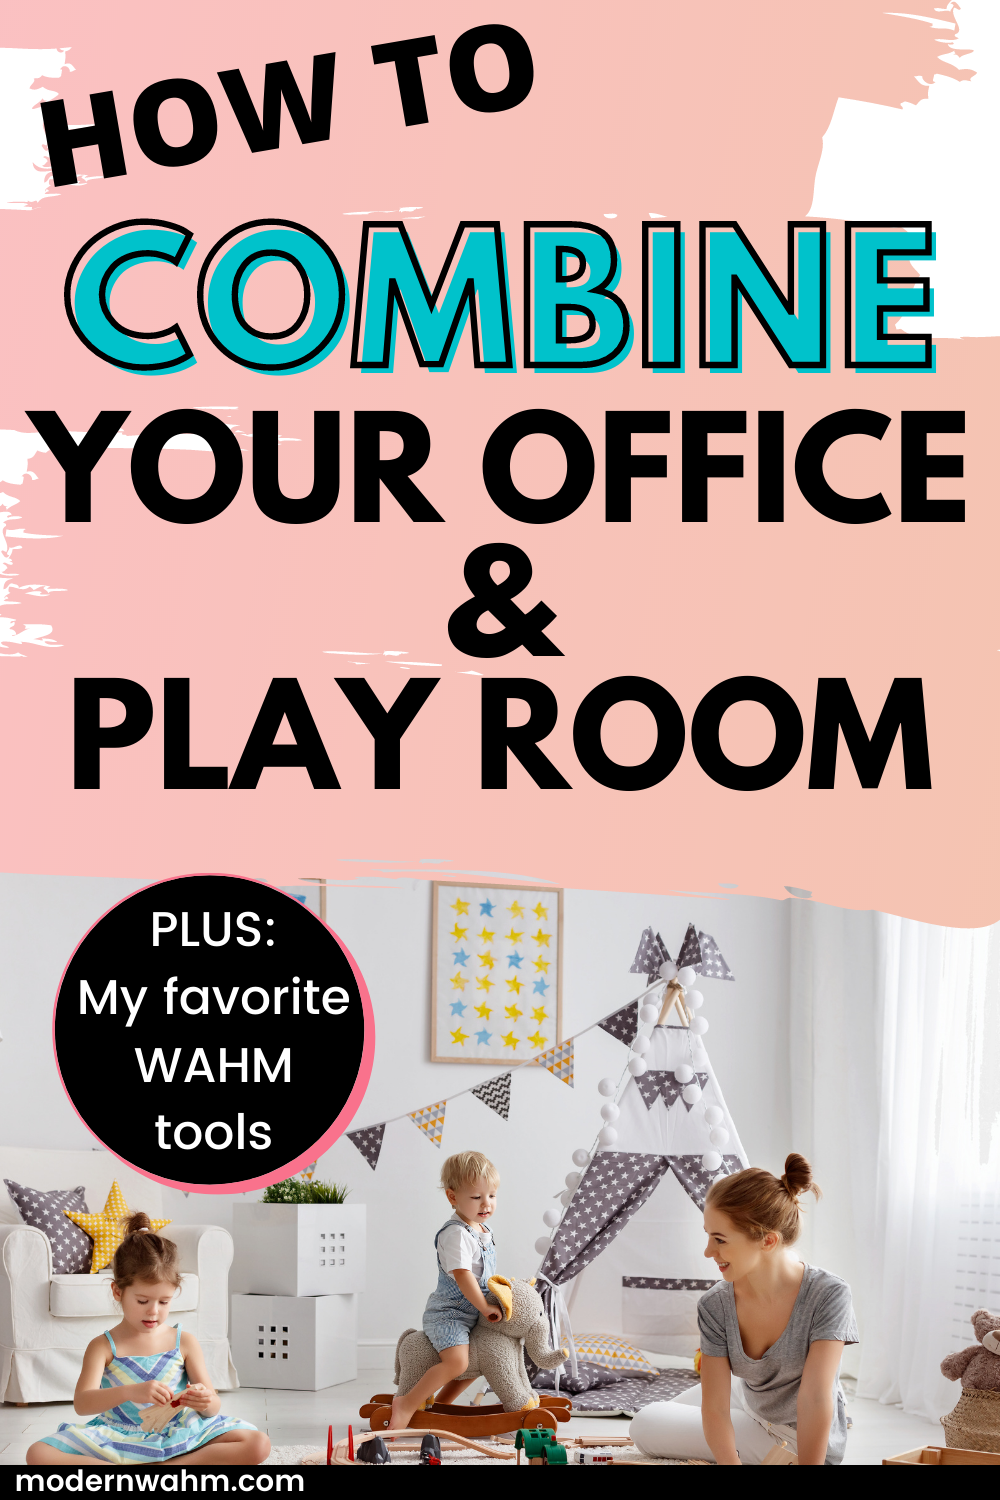 Foolproof Tips for Combining your Office and Playroom